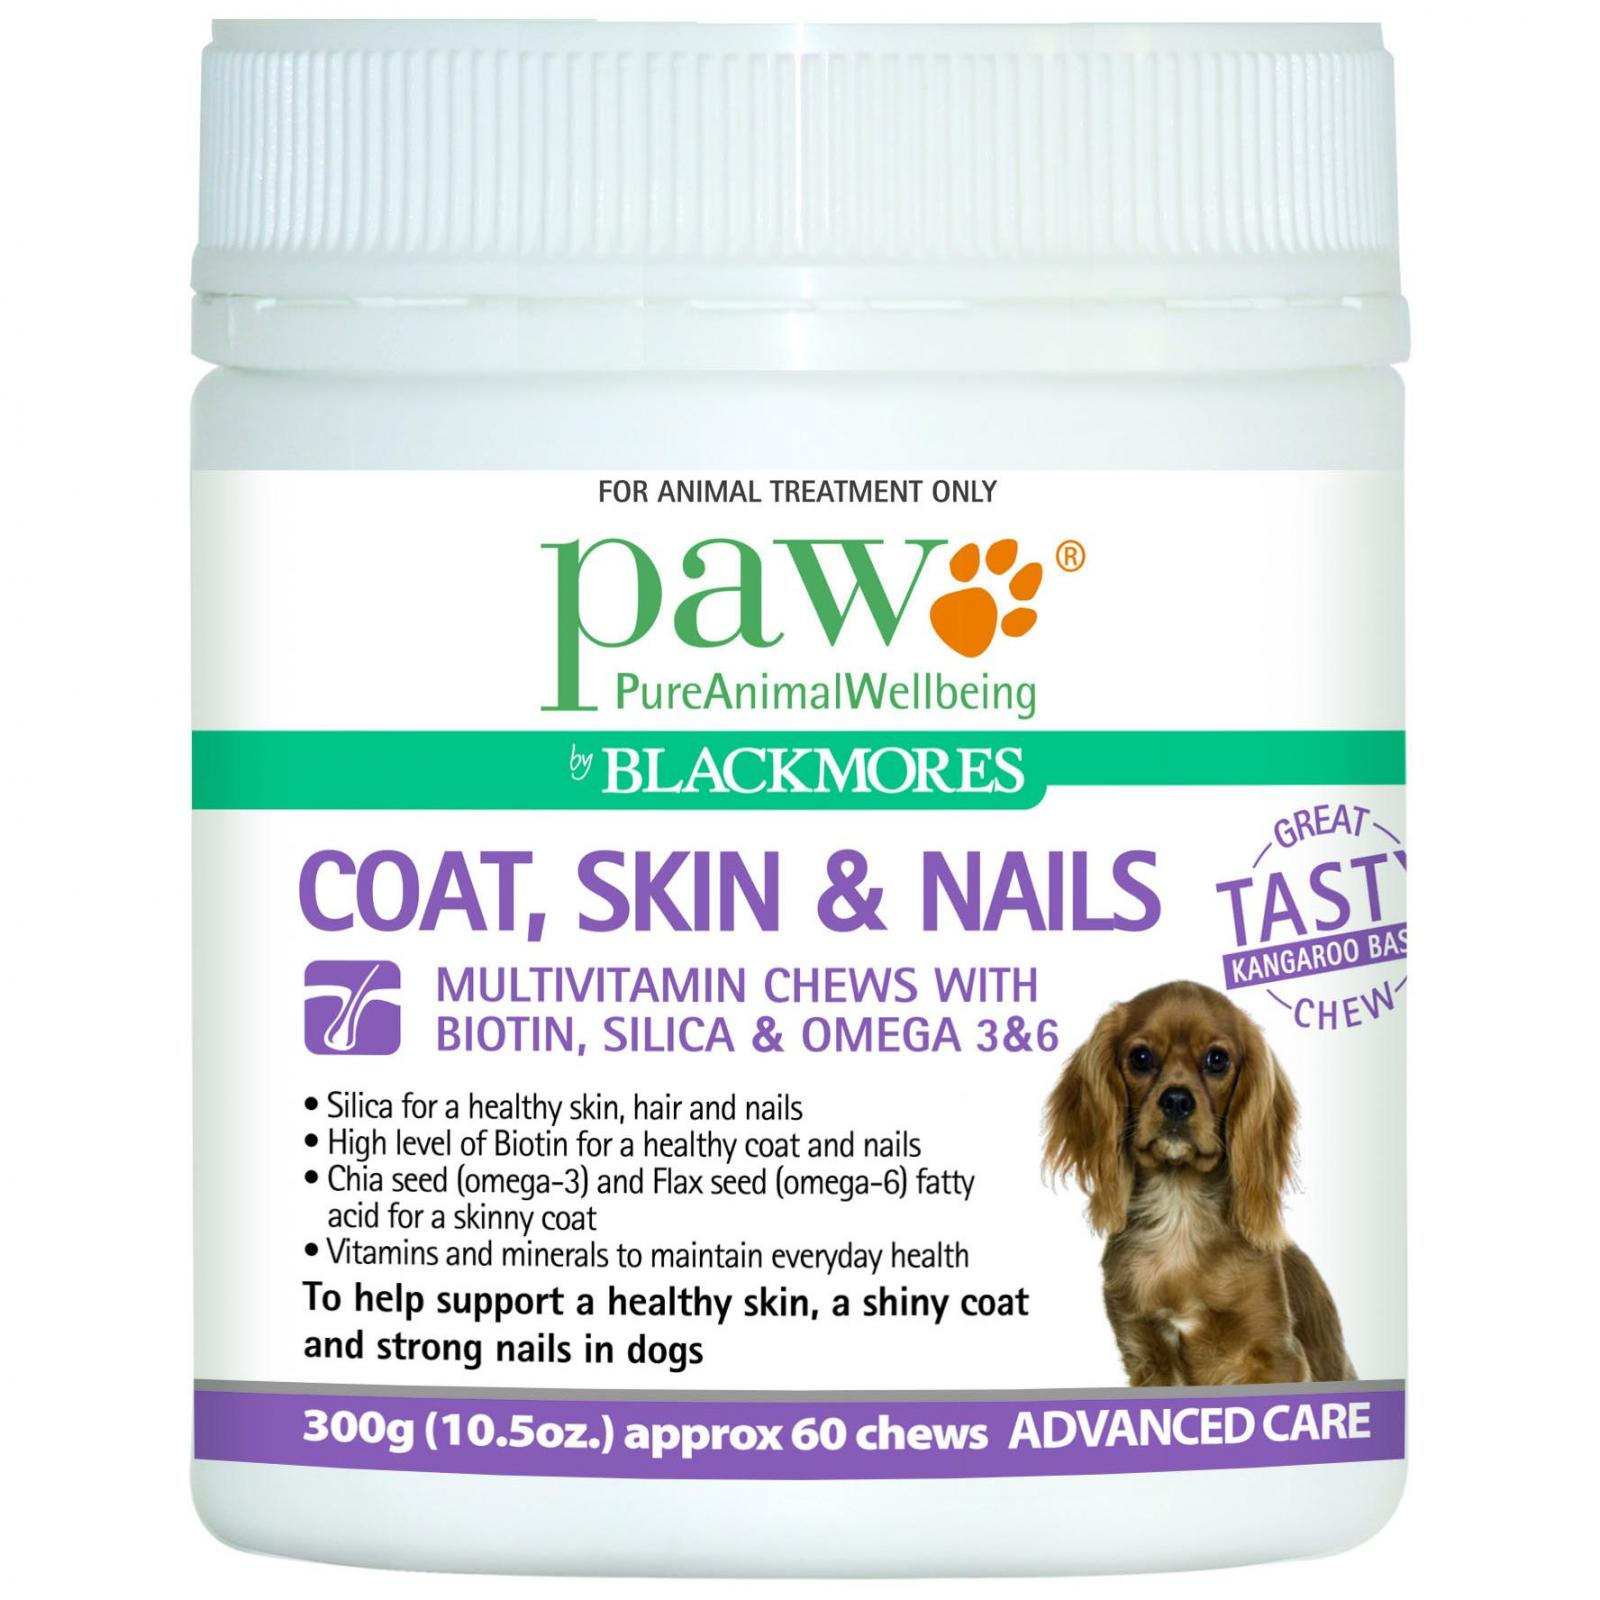 Paw PAW Coat, Skin & Nails Multivitamin Chews 300g